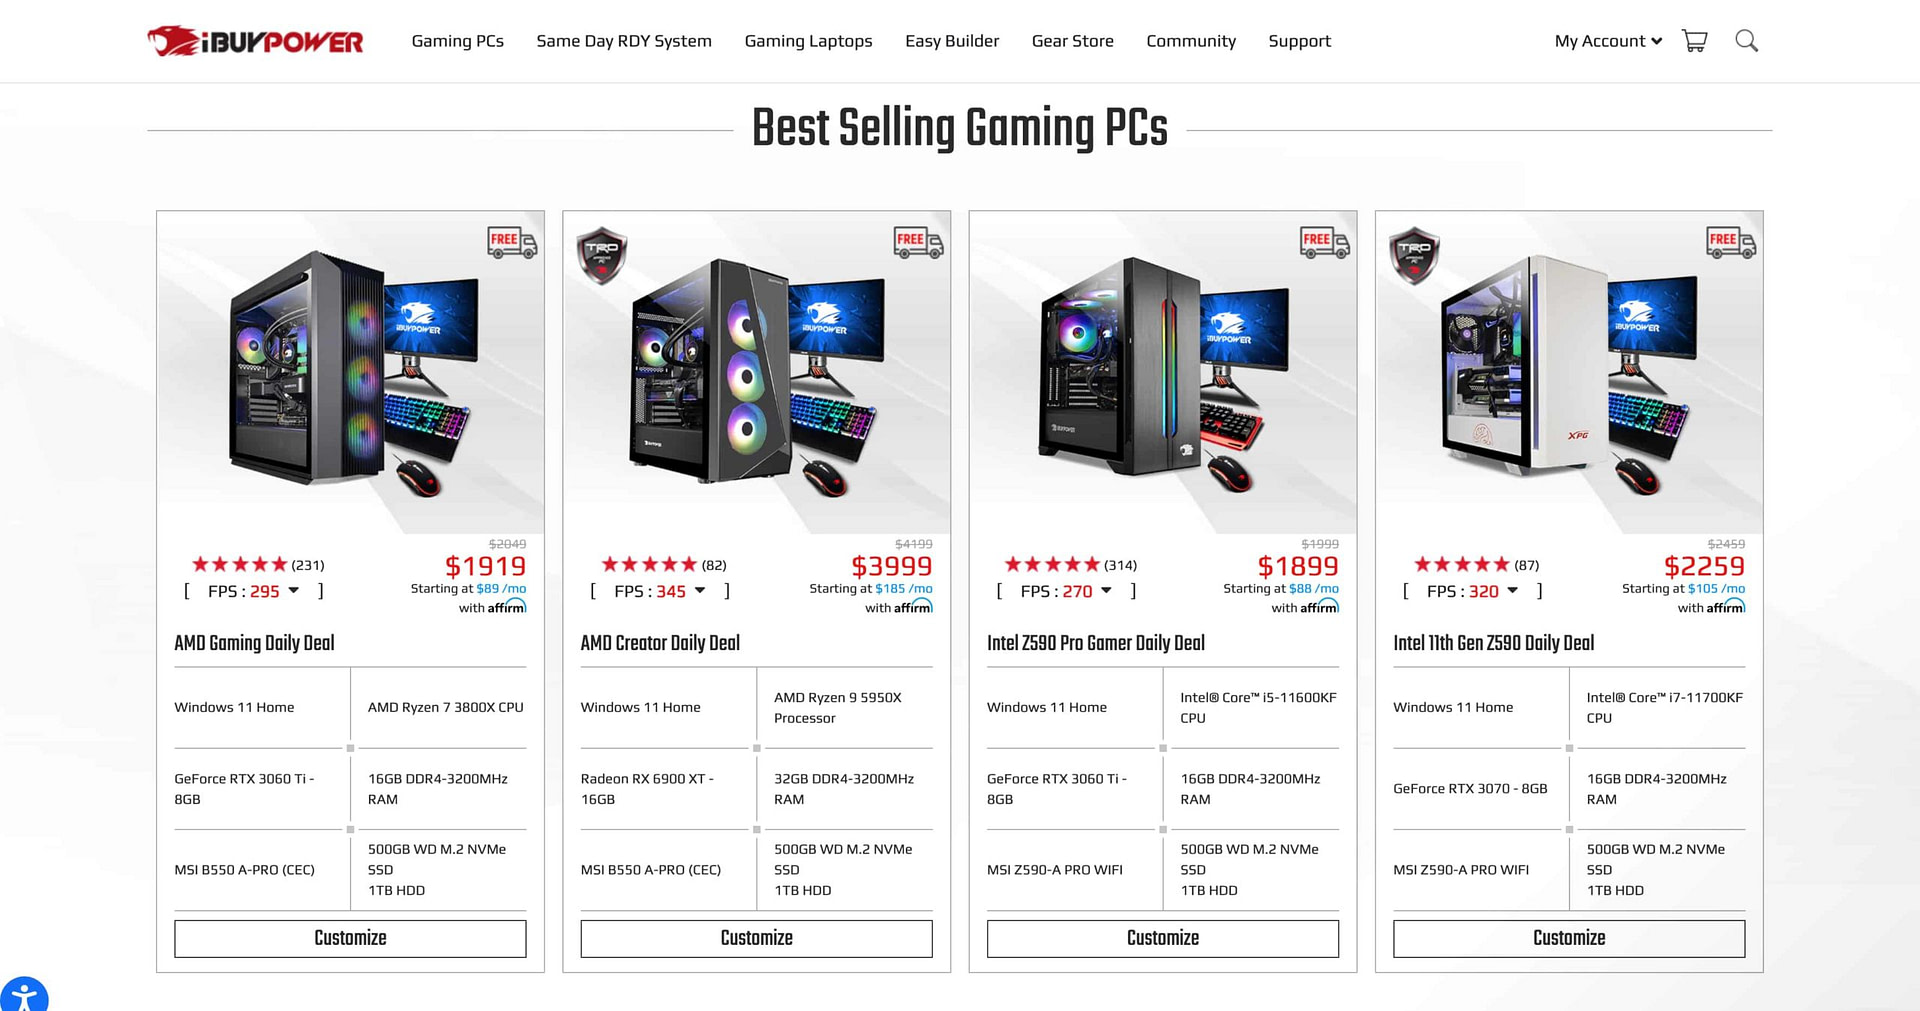 Is iBUYPOWER Good? A Look Into The PC Company